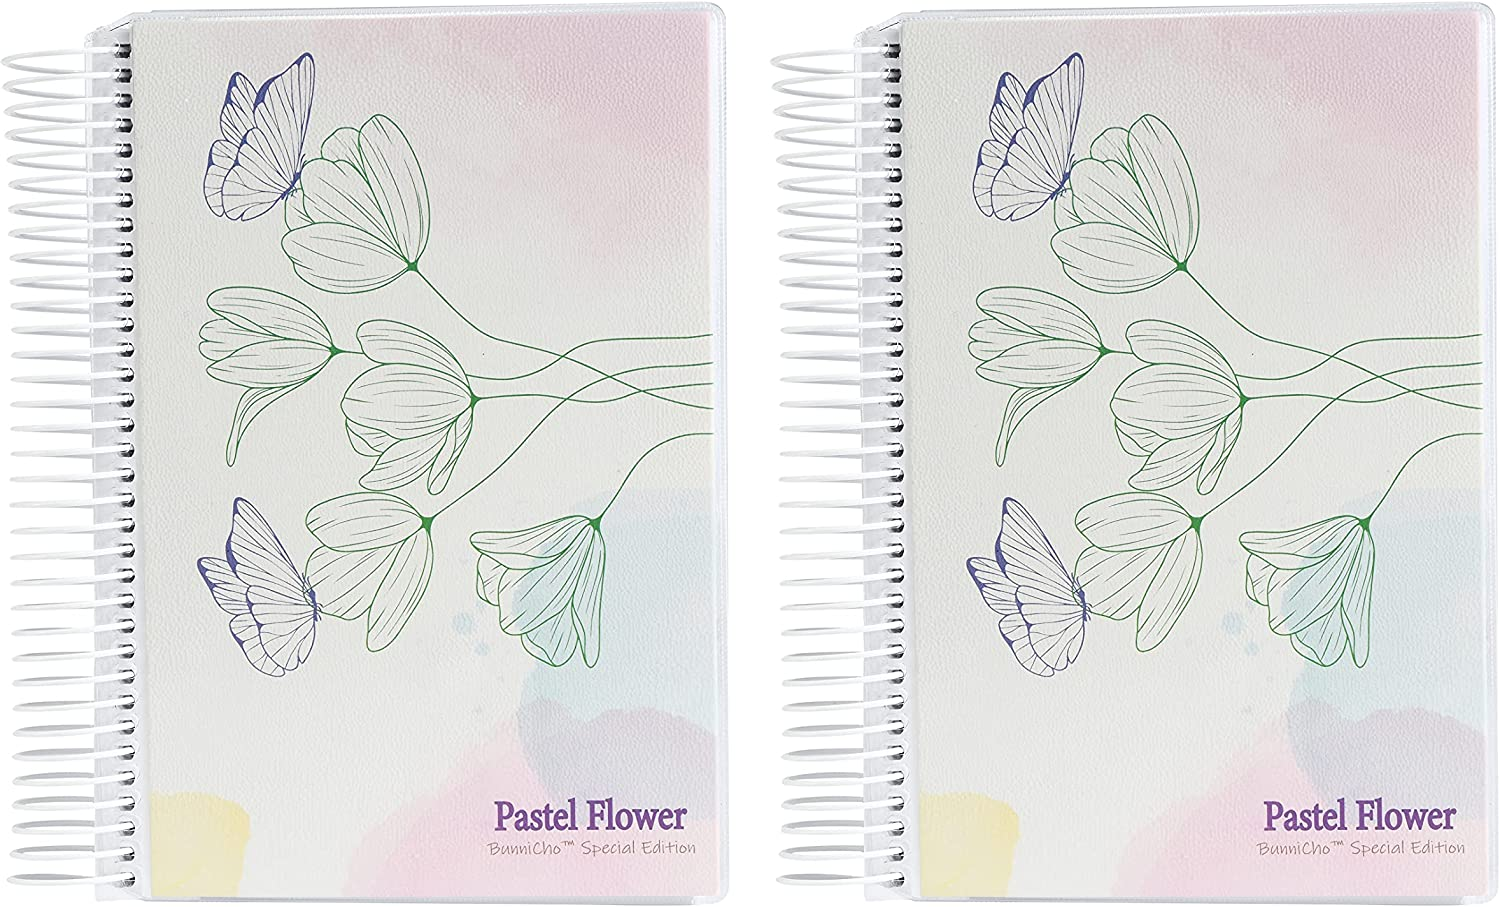 """BunniCho Pastel Flower Daily Planner, 5"""" x 7"""", Spiral-O Binding, Changeable Cover, Includes Index Stickers, Bullet Dot Stickers and Tatto Stickers, 2pcs/Pack (BCPF-P-160): Office Products"""